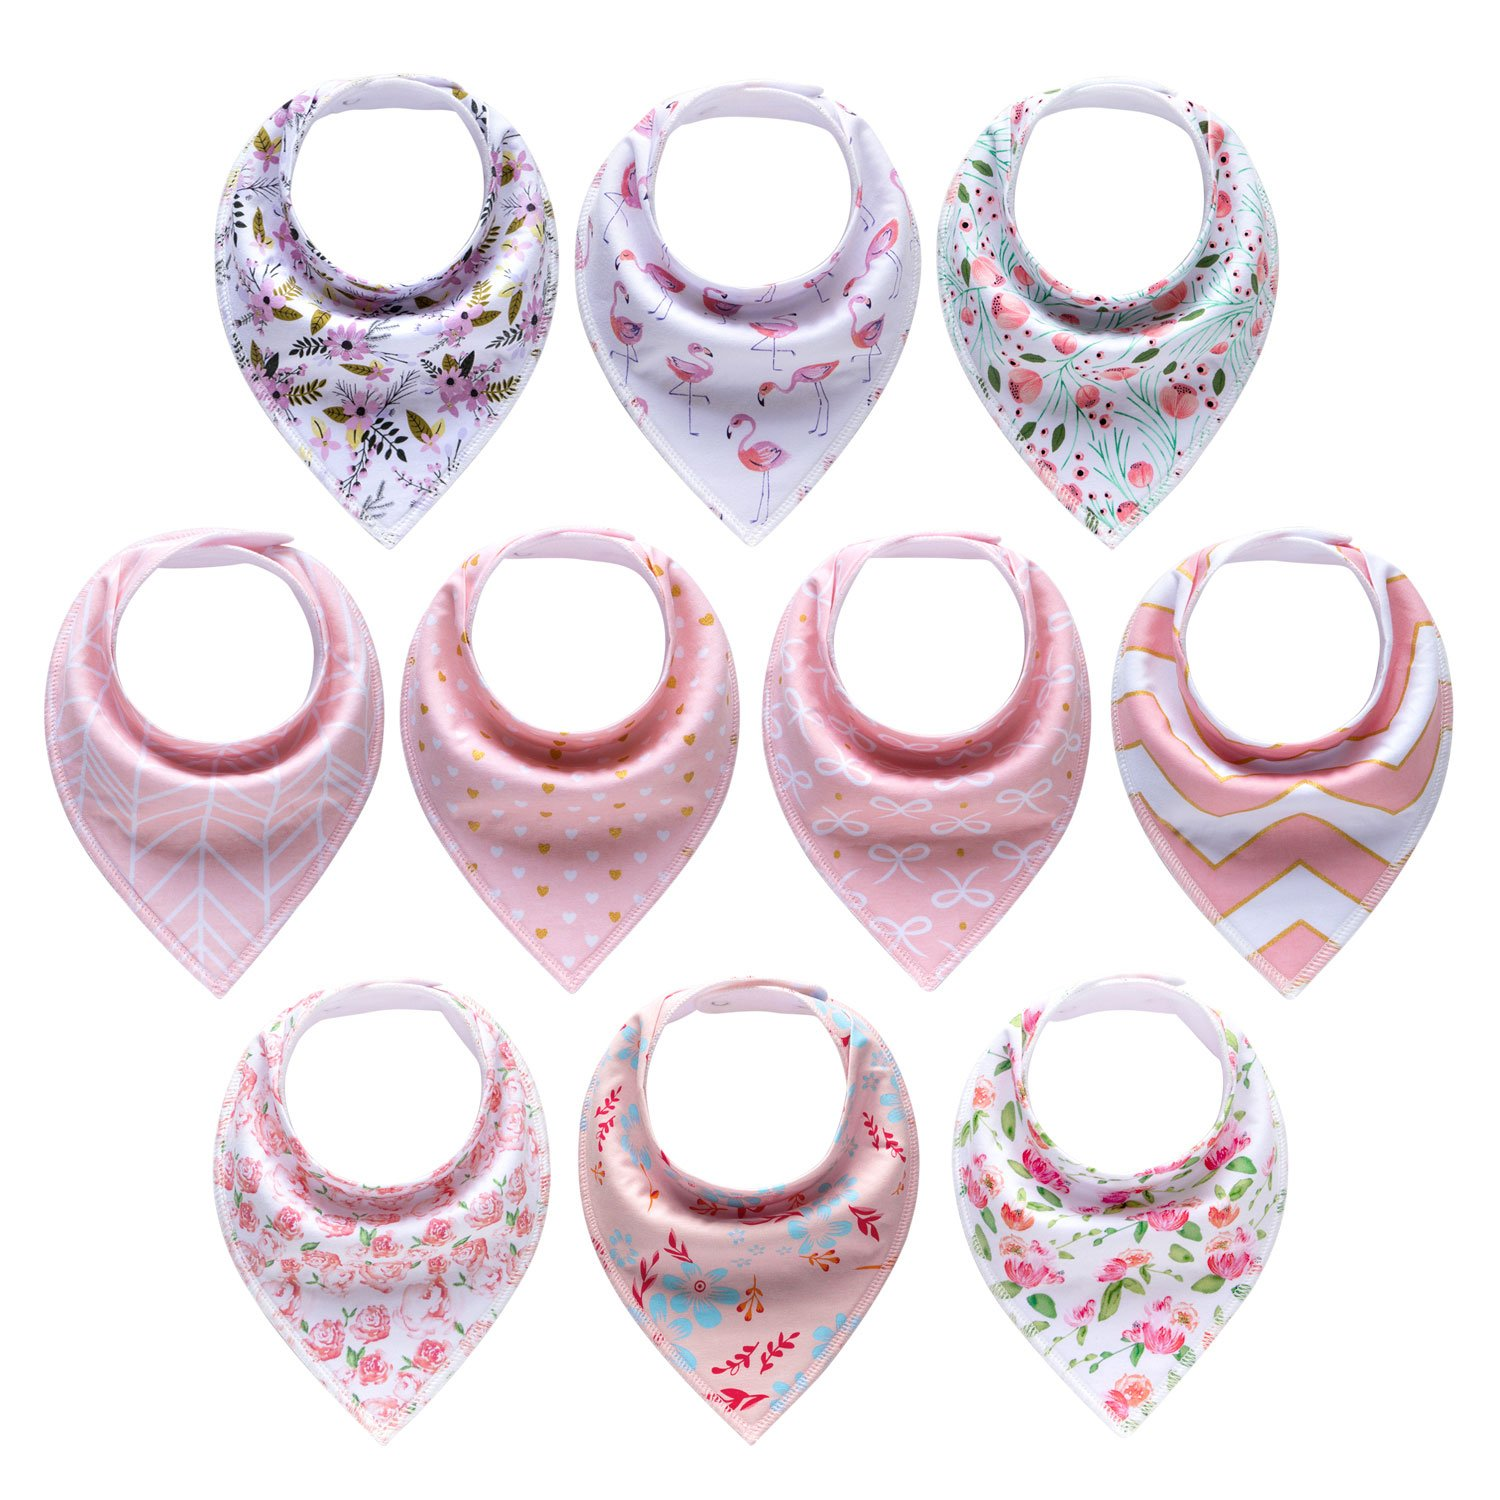 10-Pack Baby Girl Bandana Drool Bibs for Drooling and Teething by MiiYoung by MiiYoung (Image #1)